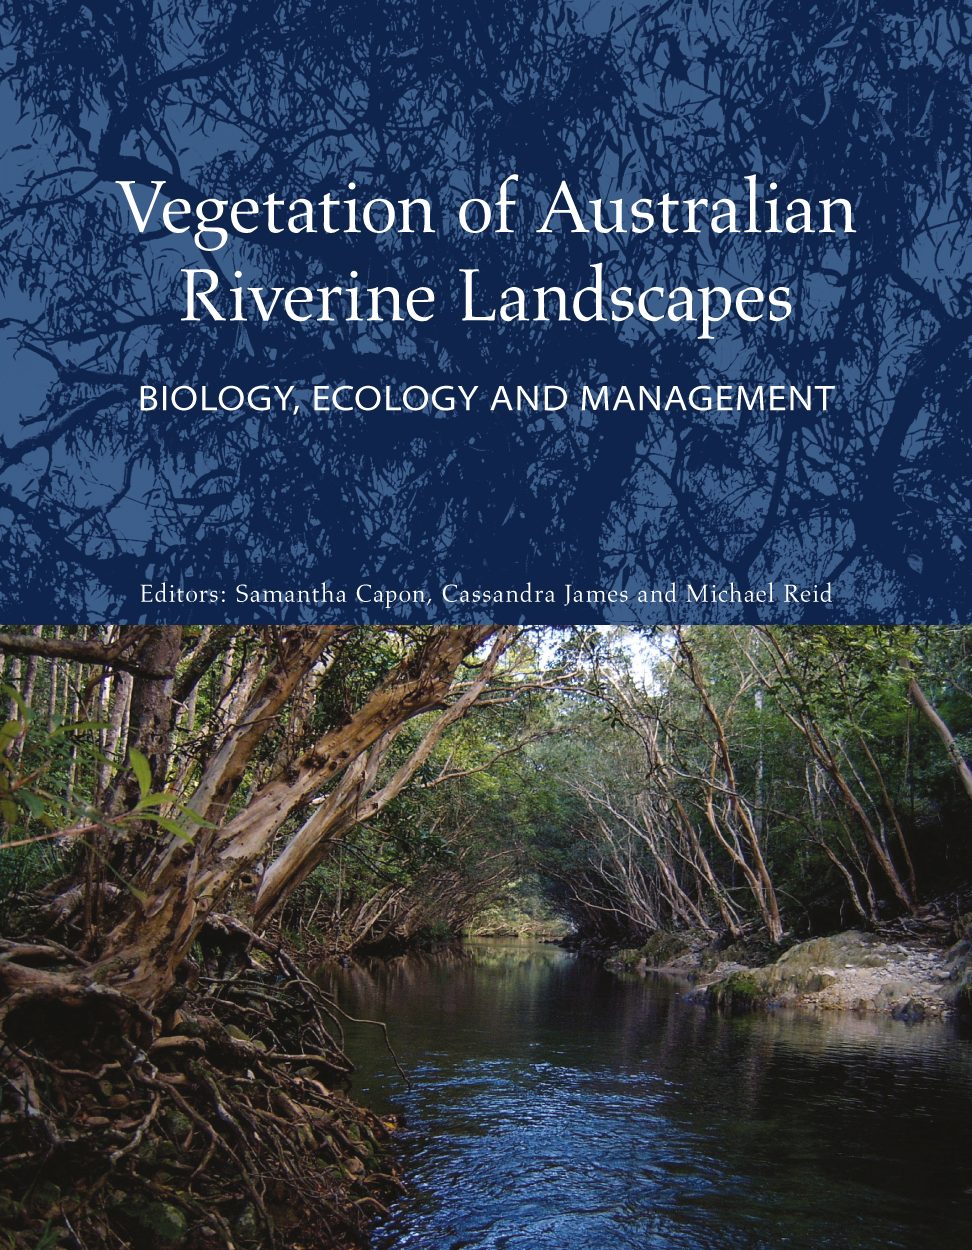 Cover image featuring Kanuka Box trees overarching Behana Creek in the Wet